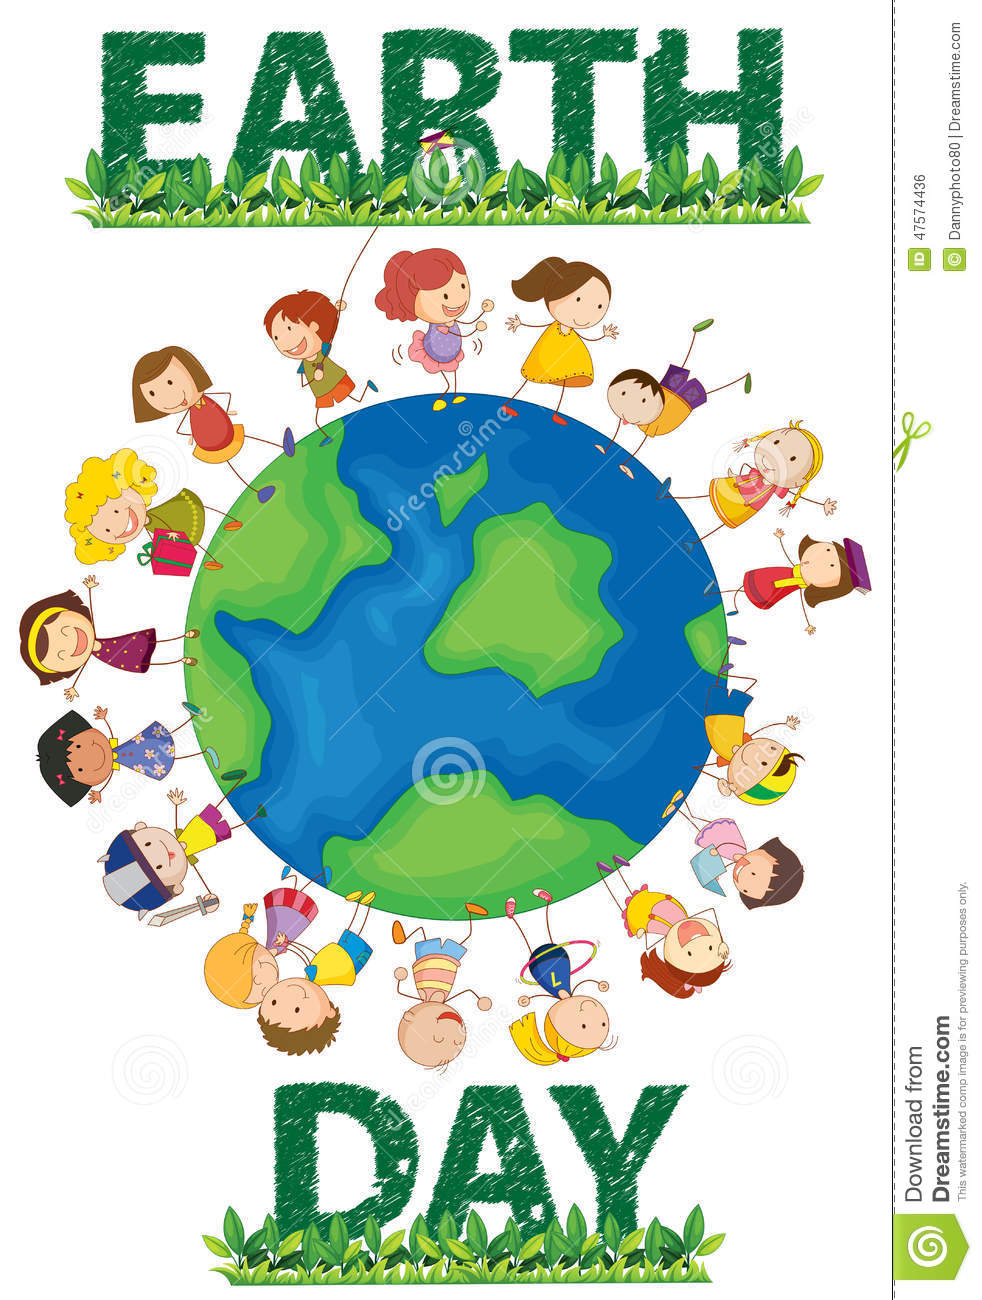 13 Fun Earth Day Activities for Kids That Celebrate Mother Nature